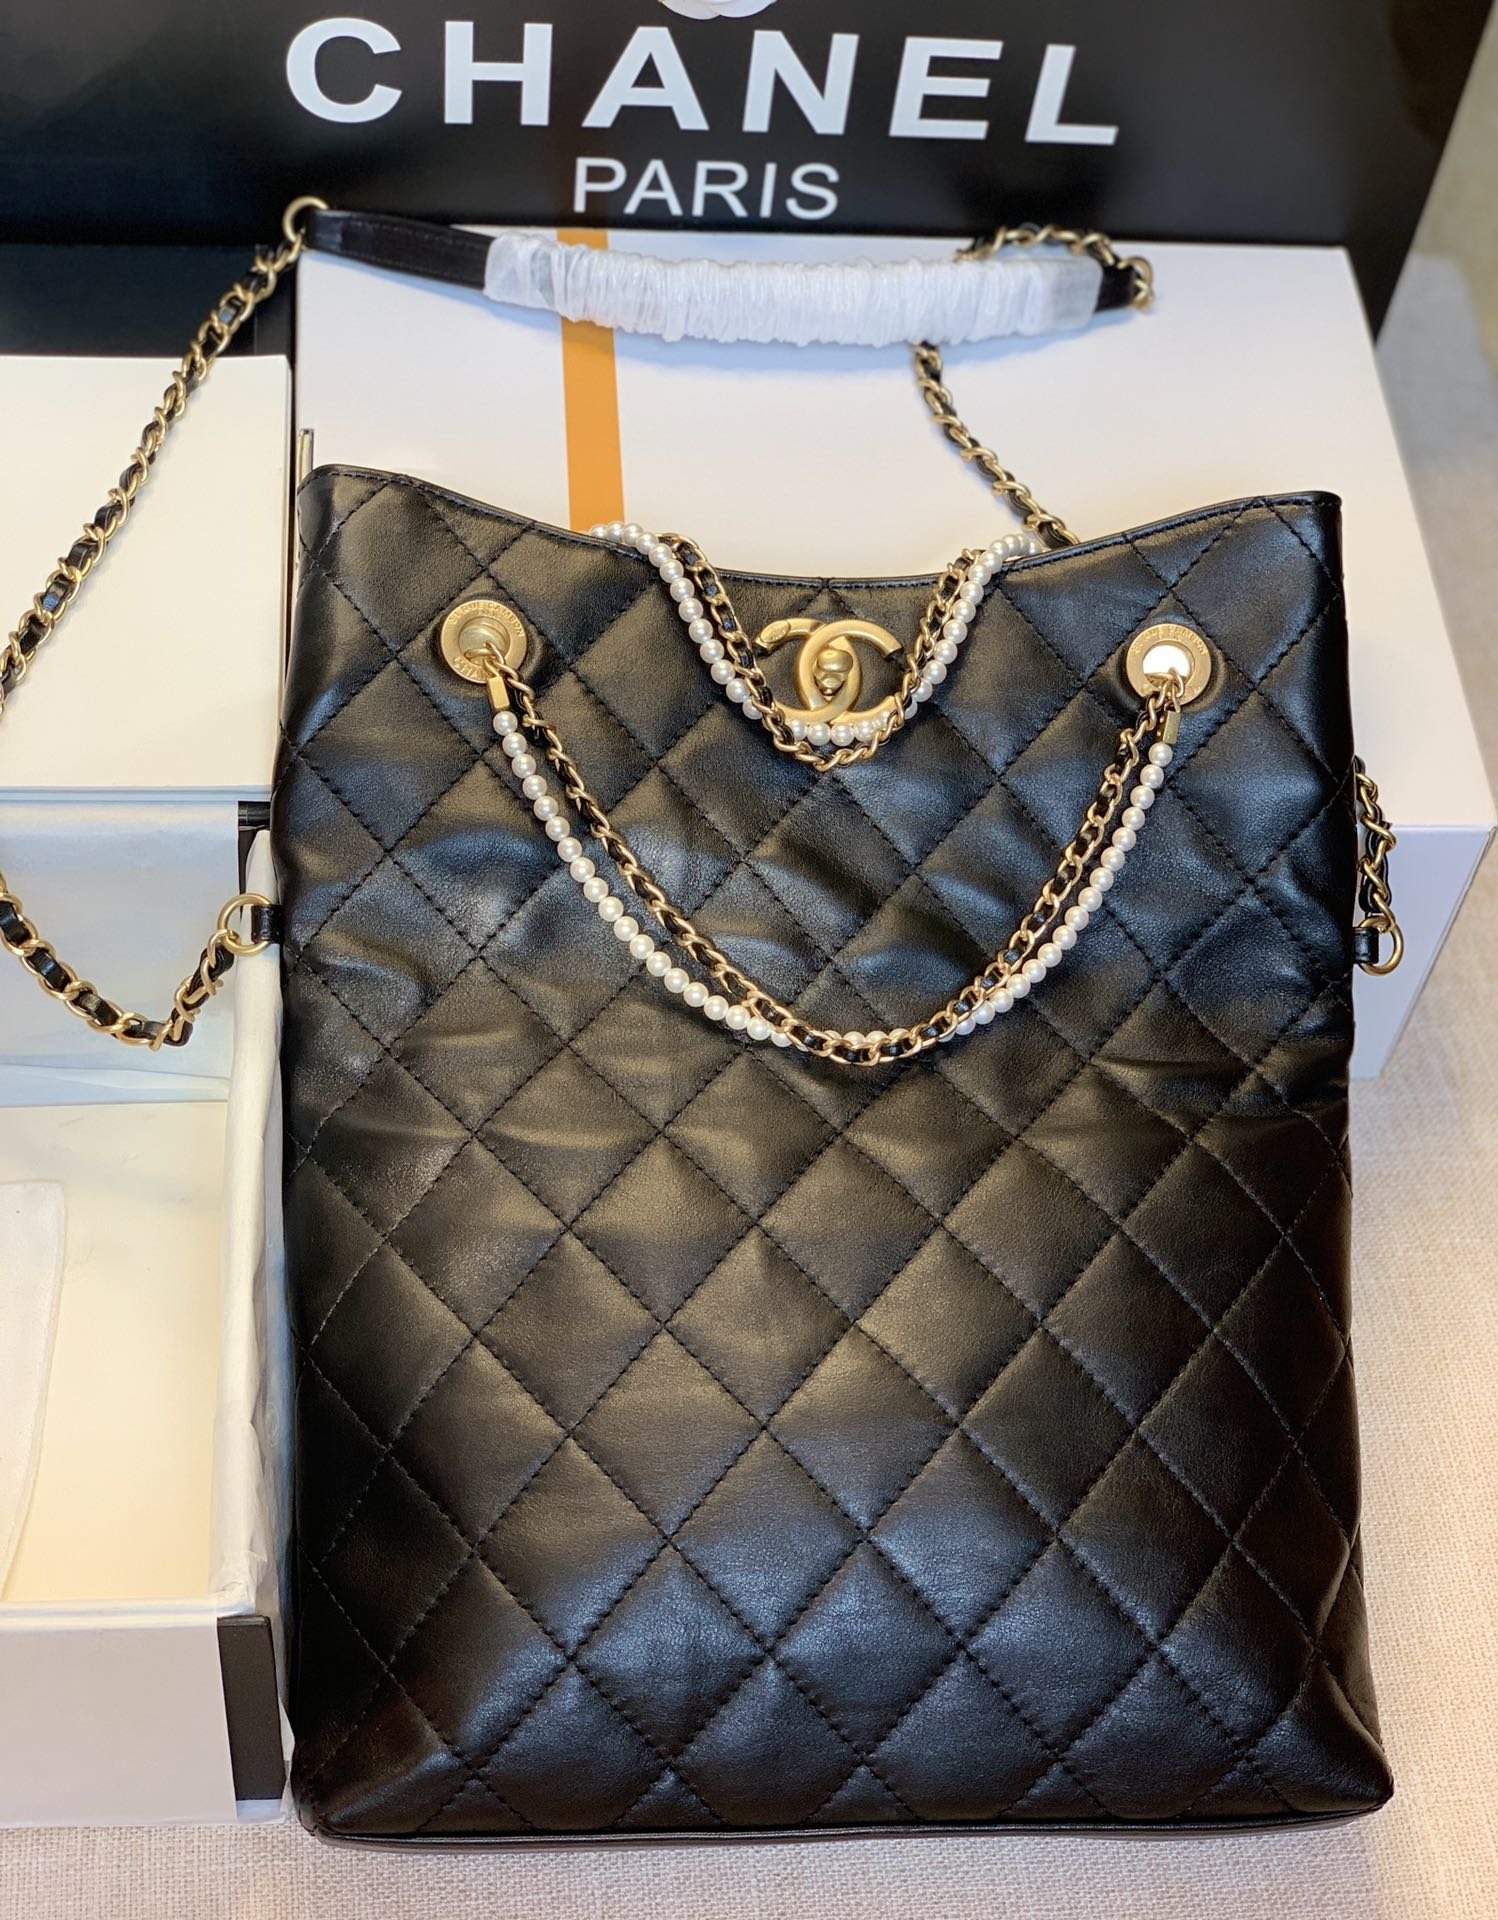 NEW replica Chanel AS2213 Shopping Bag Calfskin, Crystal Pearls Gold-Tone Metal Black